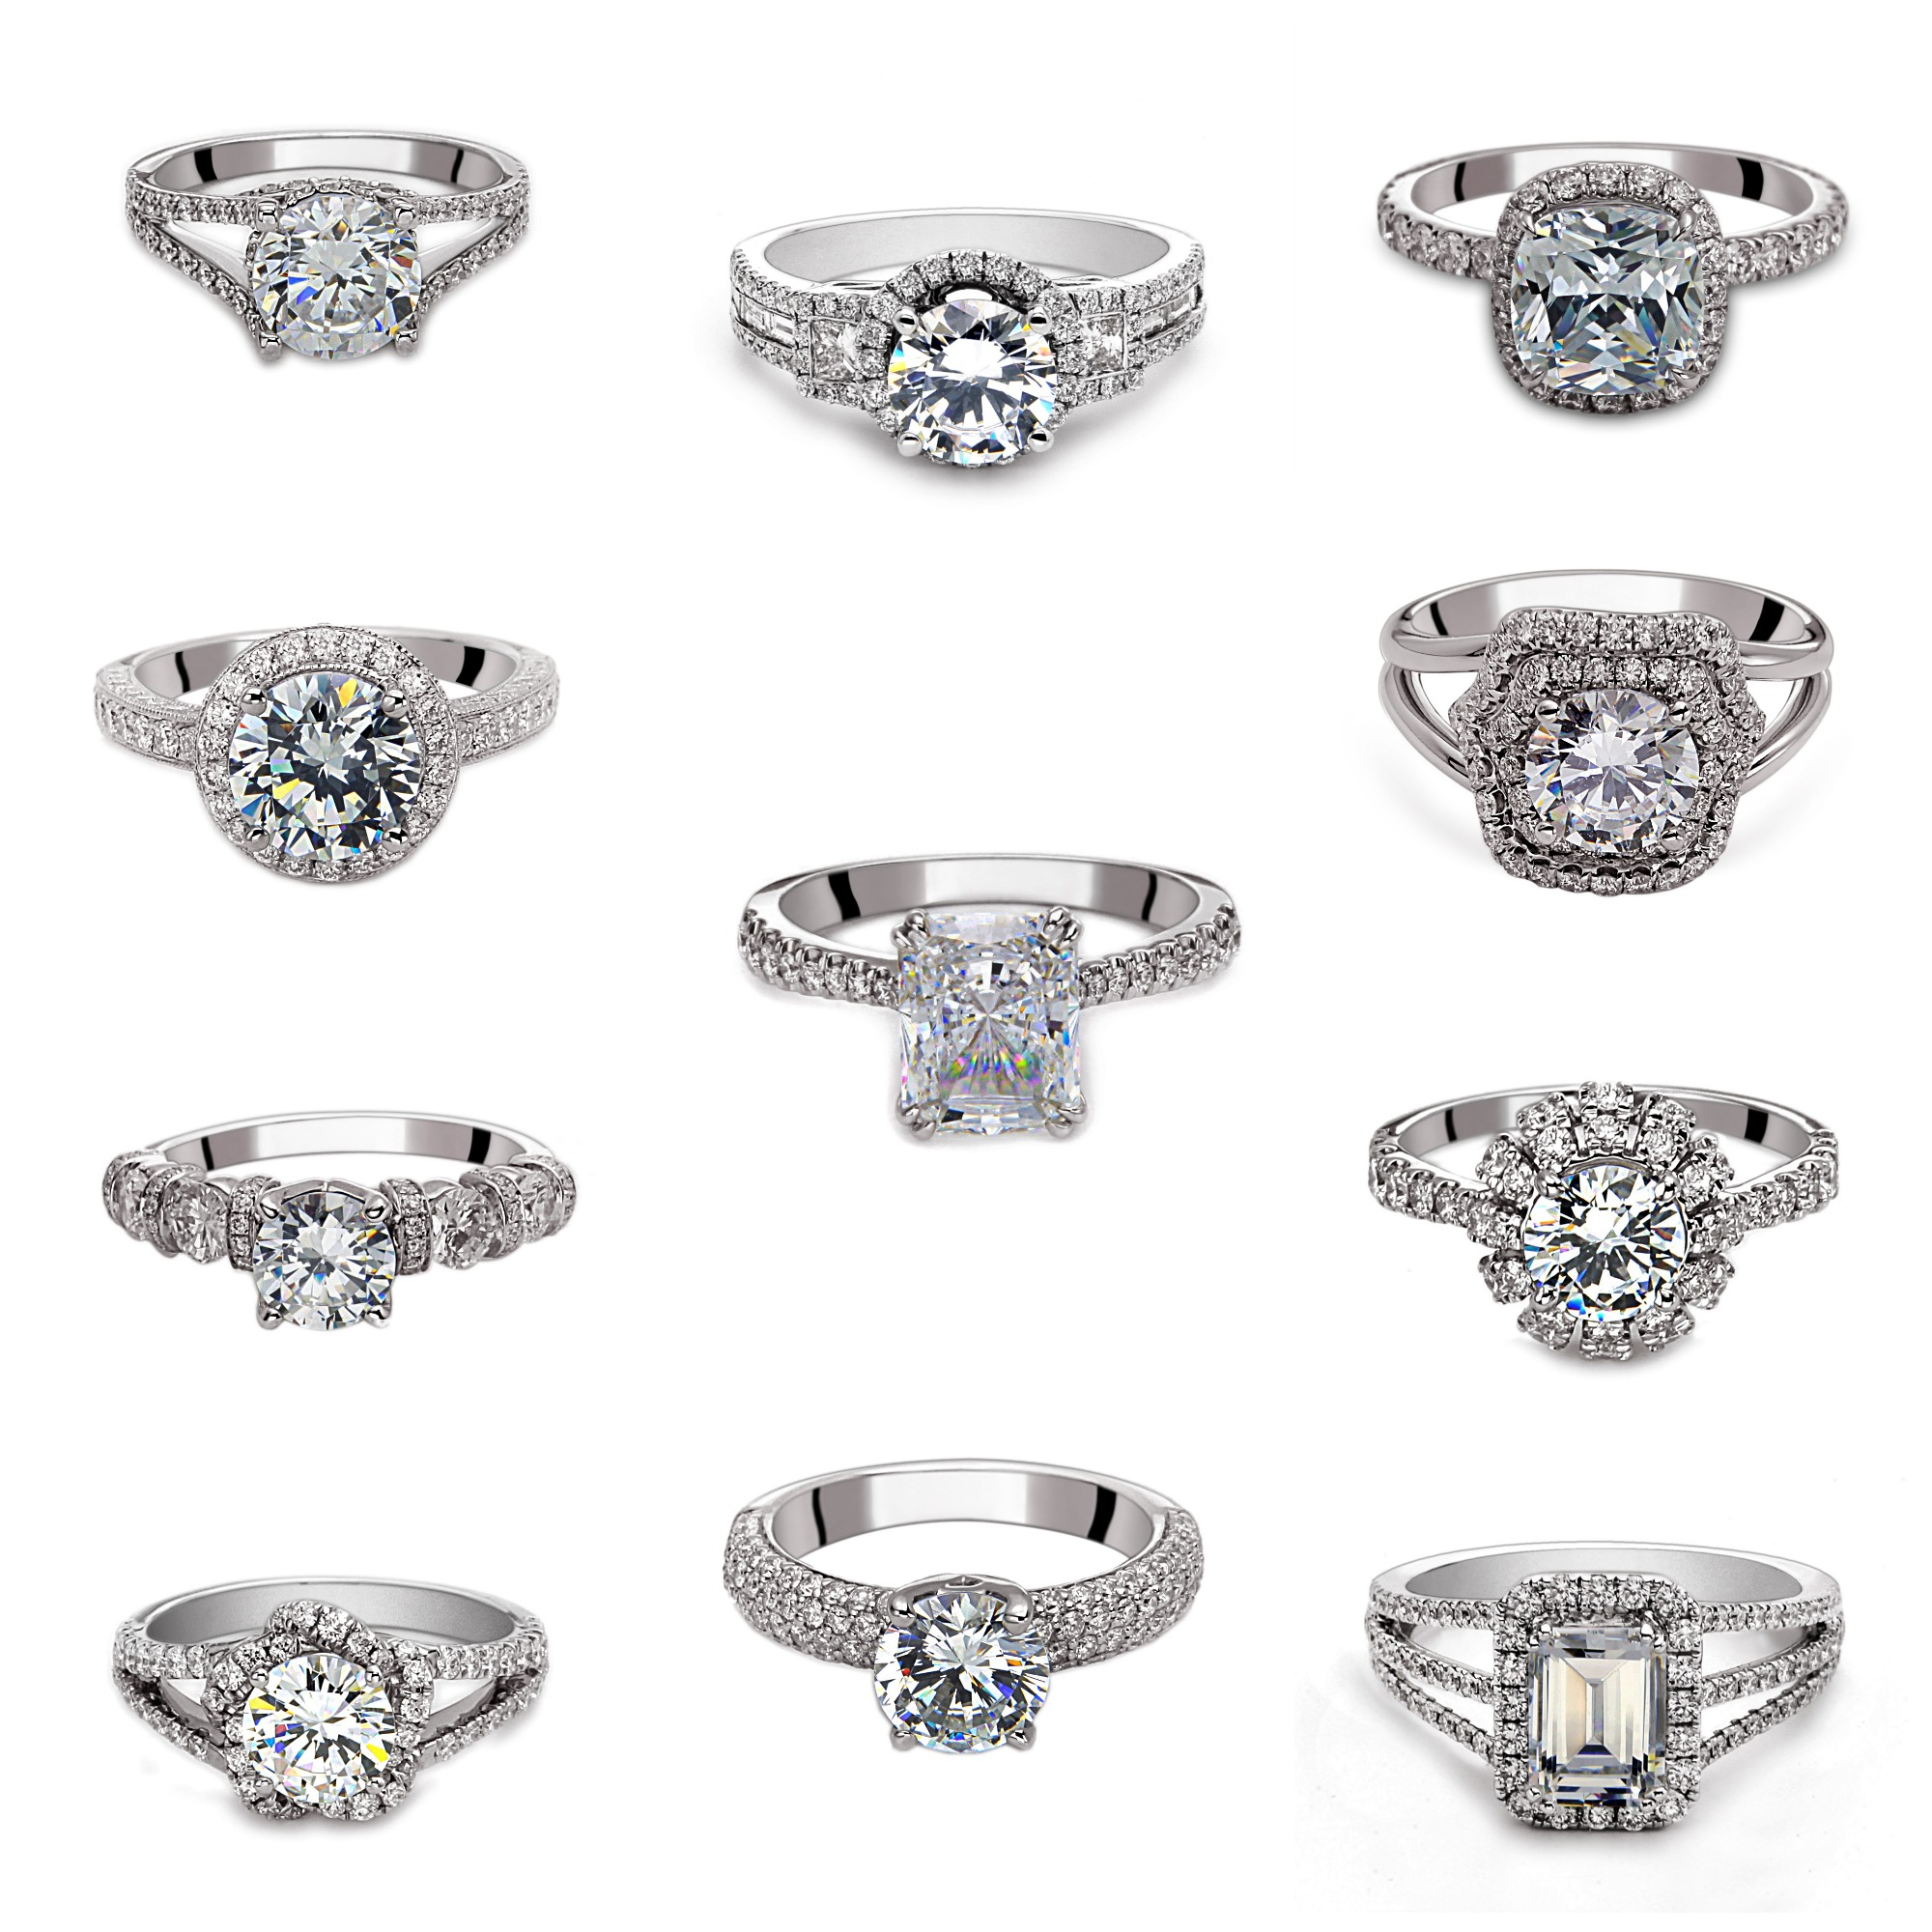 Image result for engagement ring collage